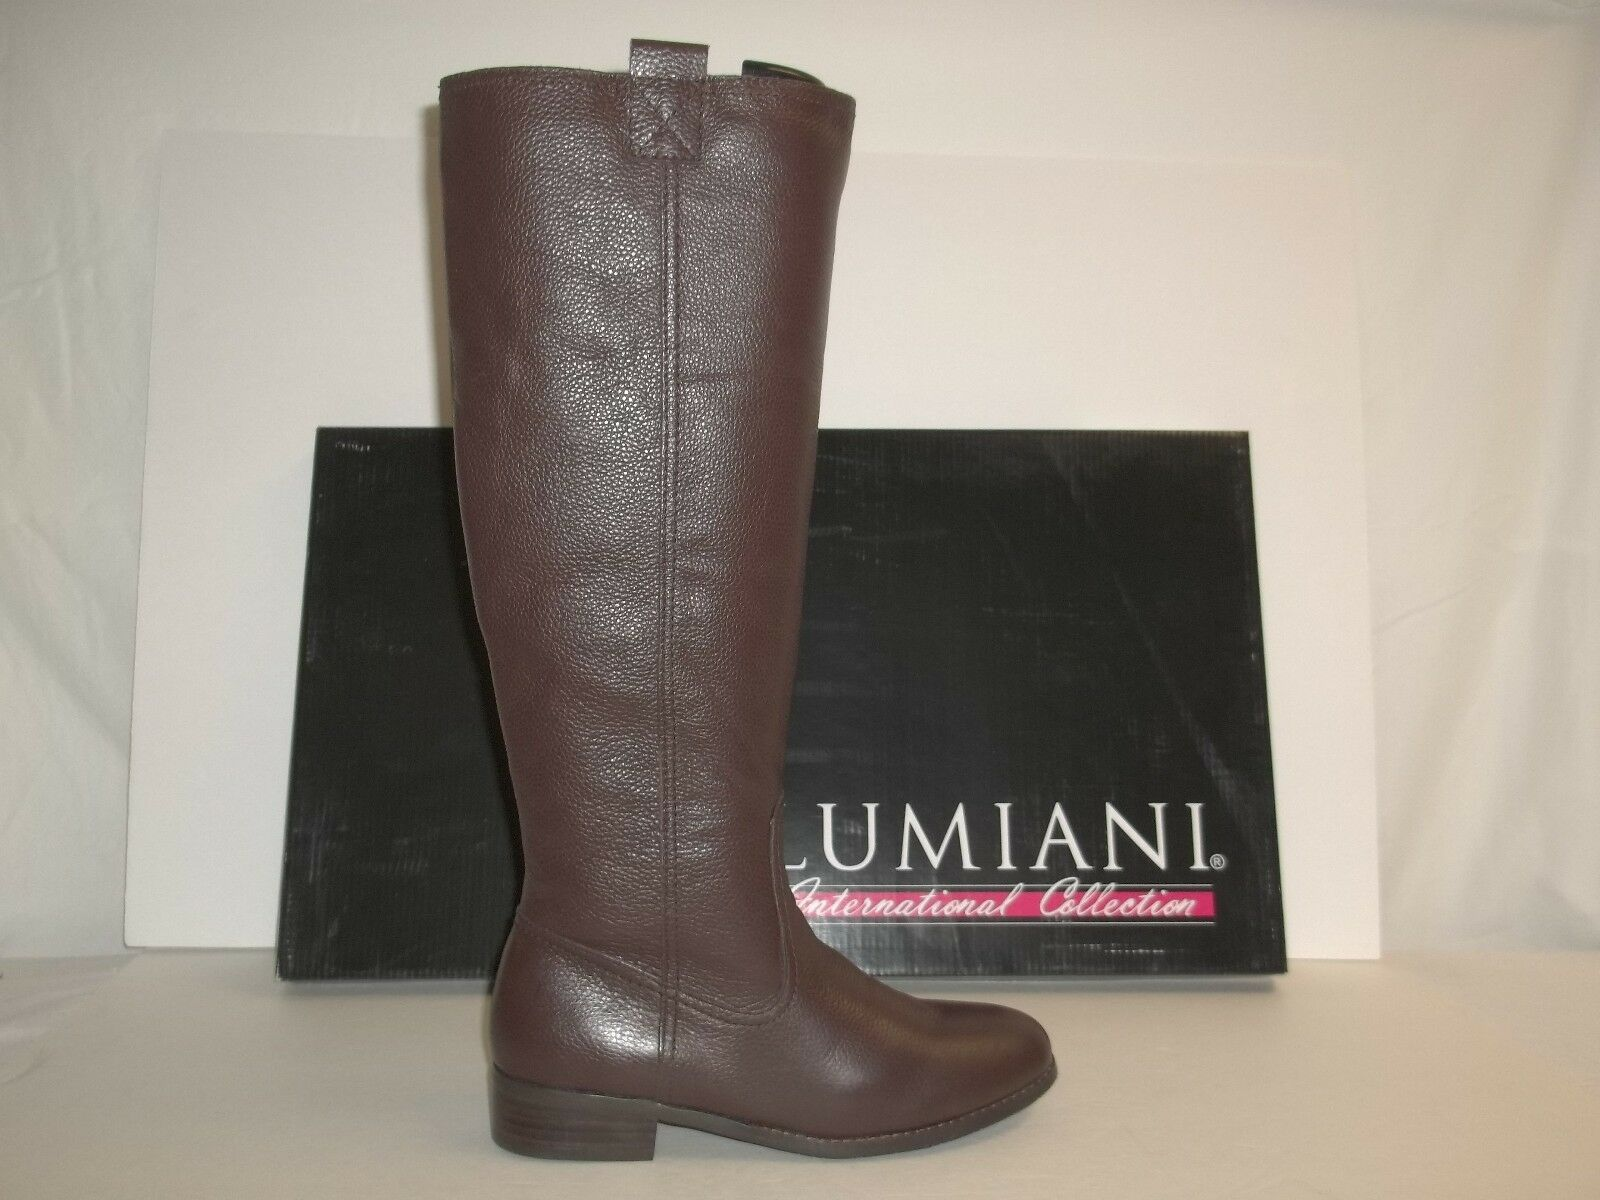 Lumiani Size 5.5 M Wide Calf Lacey Brown Brown Brown Pebble Leather Boots New Womens shoes 9ede14